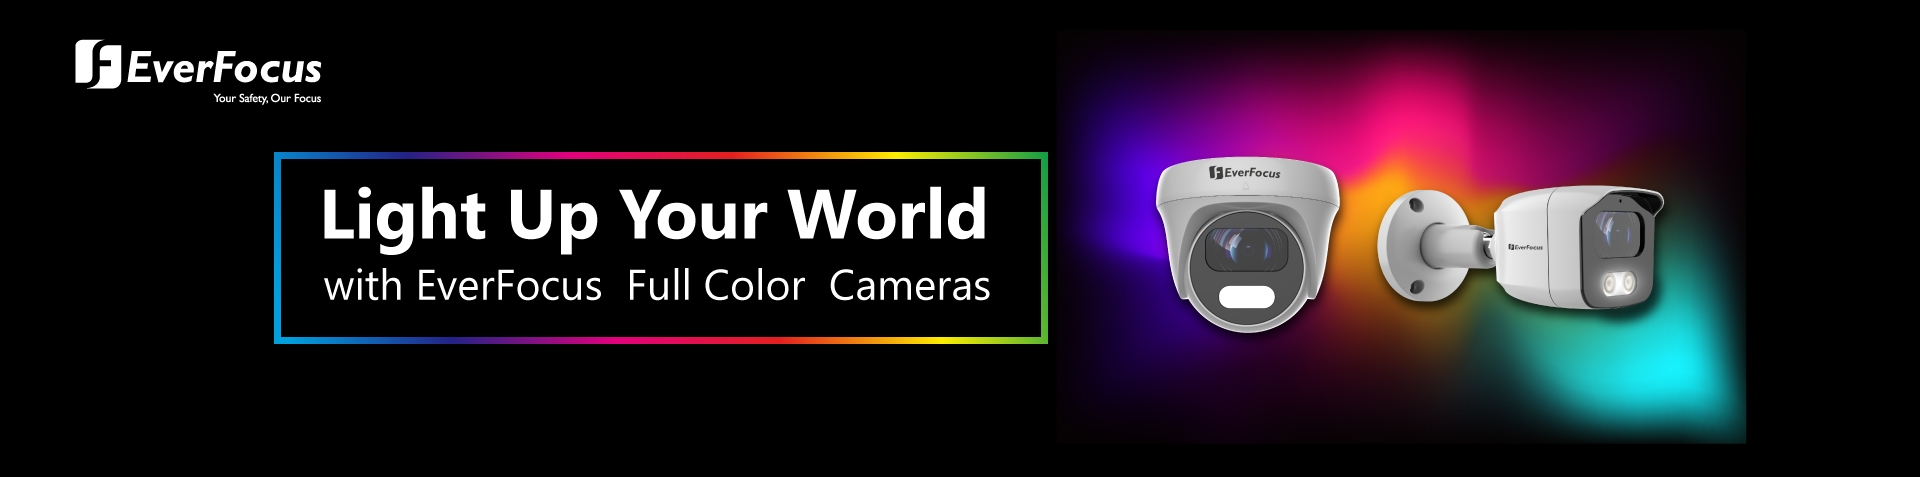 Light Up Your World with EverFocus Full Color Camera Series